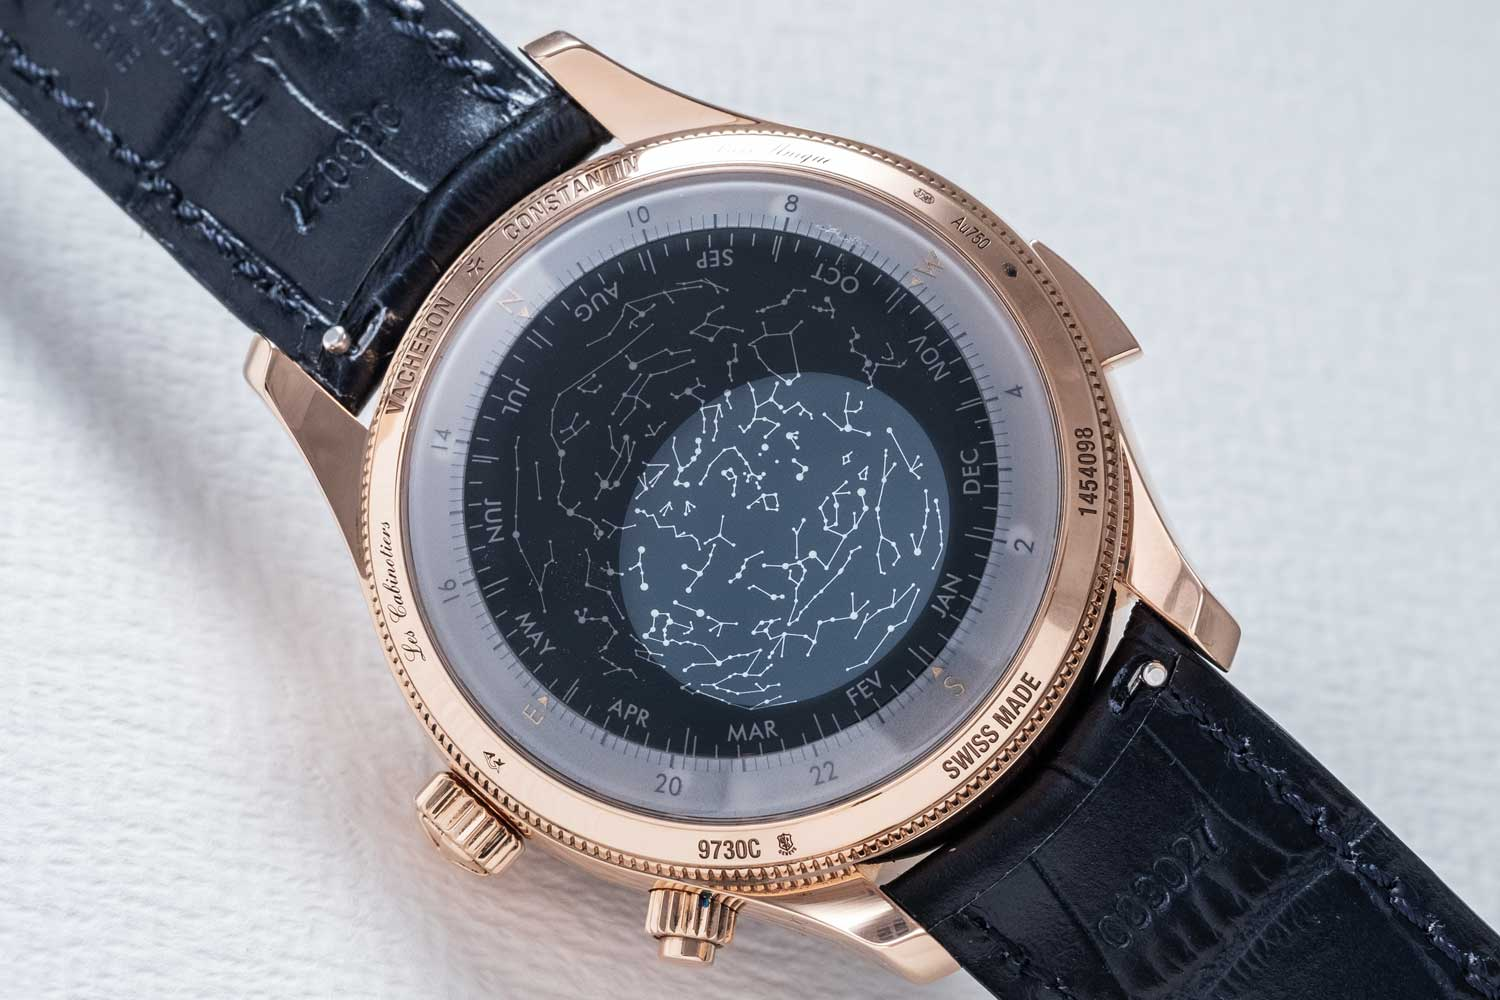 The sky chart on the back of the Les Cabinotiers Minute Repeater Tourbillon Sky Chart - ref. 9730C/000R-B493 (Image © Revolution)